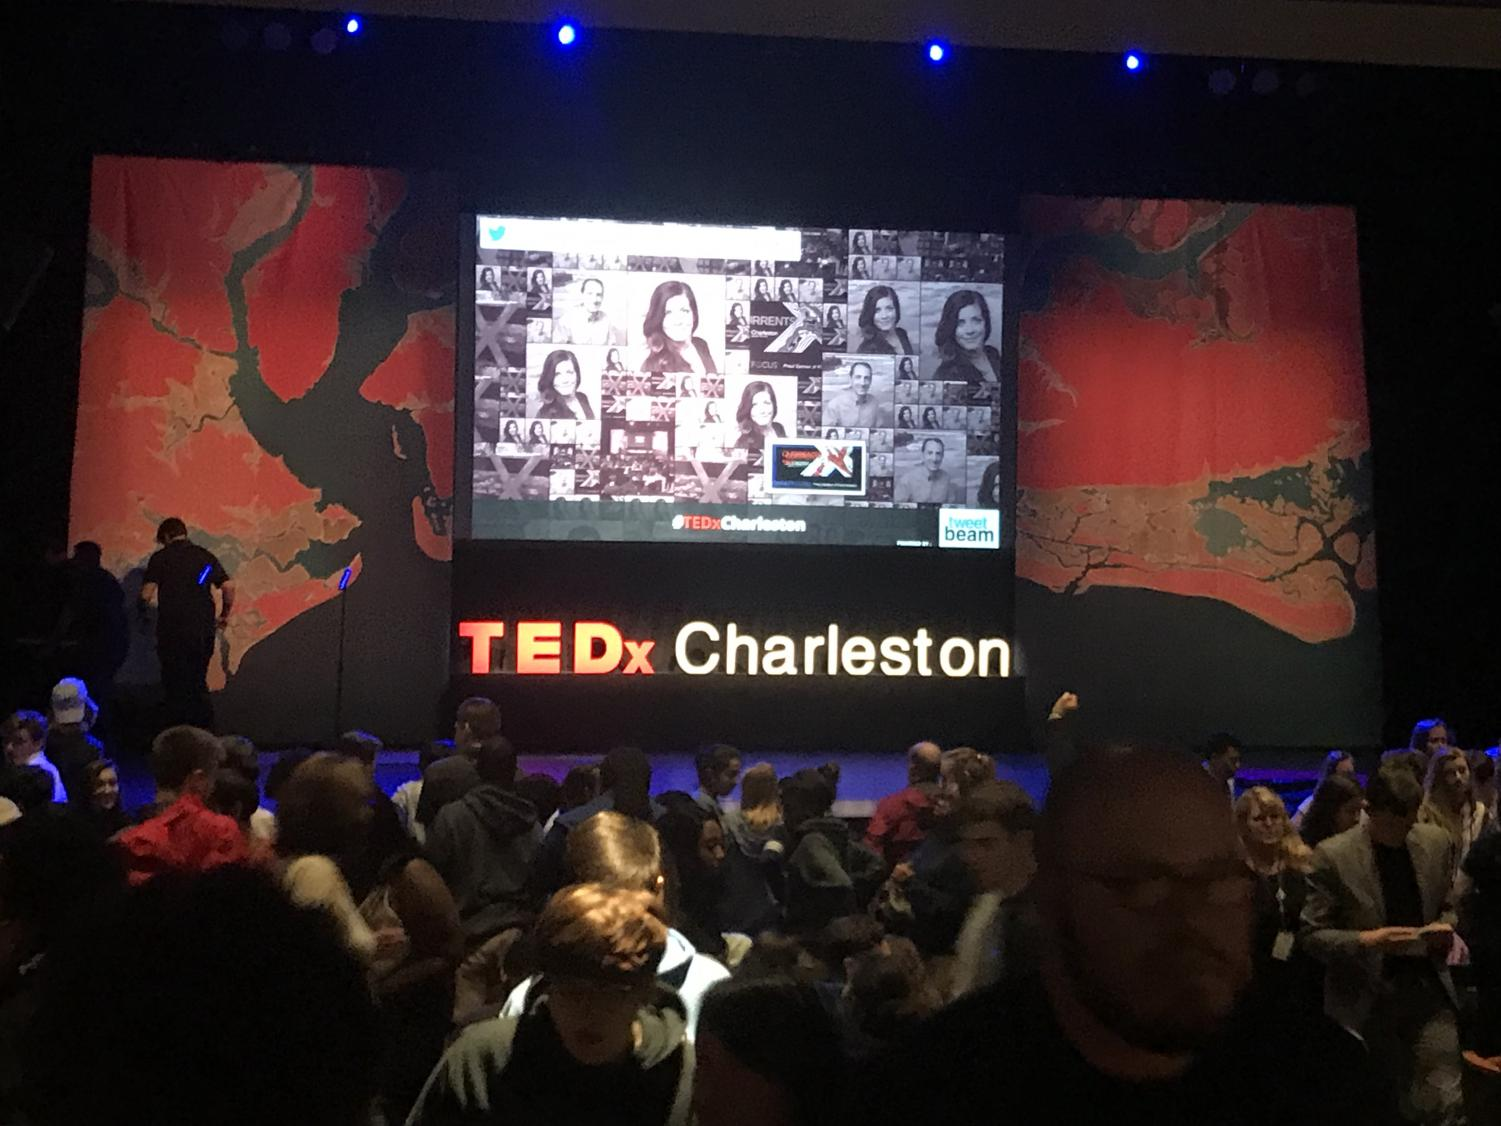 The Charleston Music Hall set up for Charleston's annual TEDx event. Theme: Currents